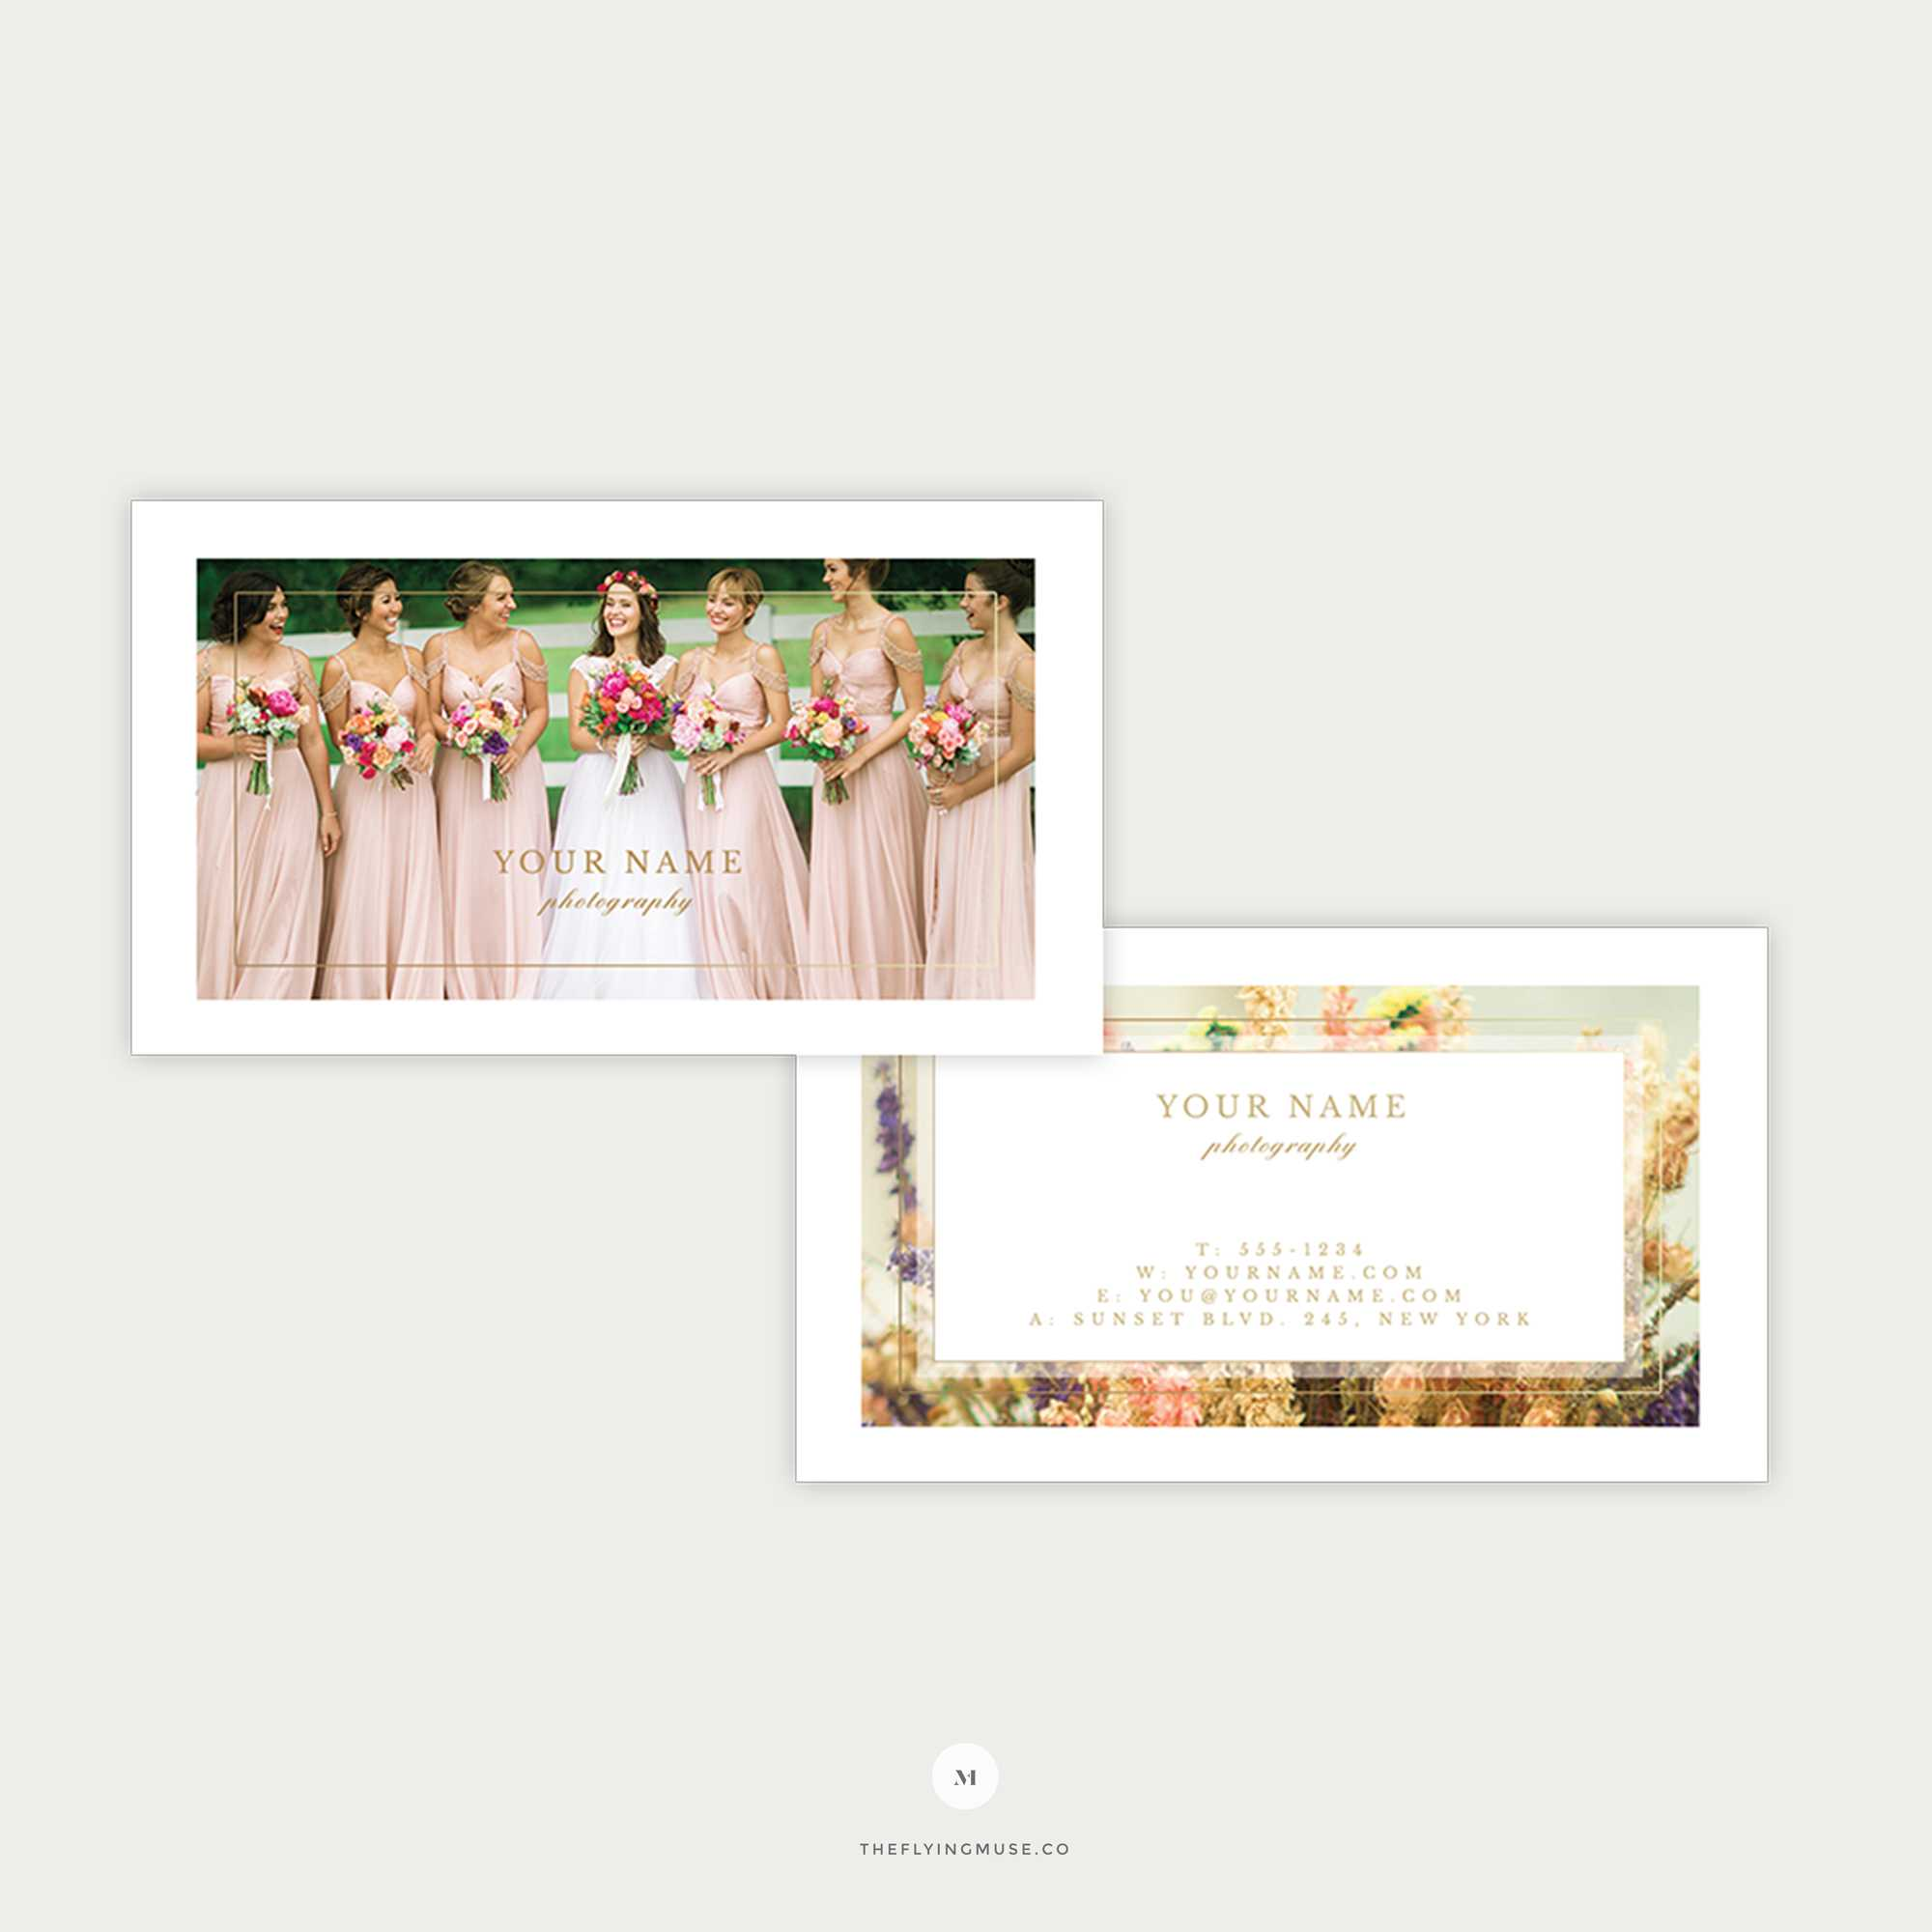 Elegant Wedding Photography Business Card Template - The Flying Muse throughout Photography Referral Card Templates